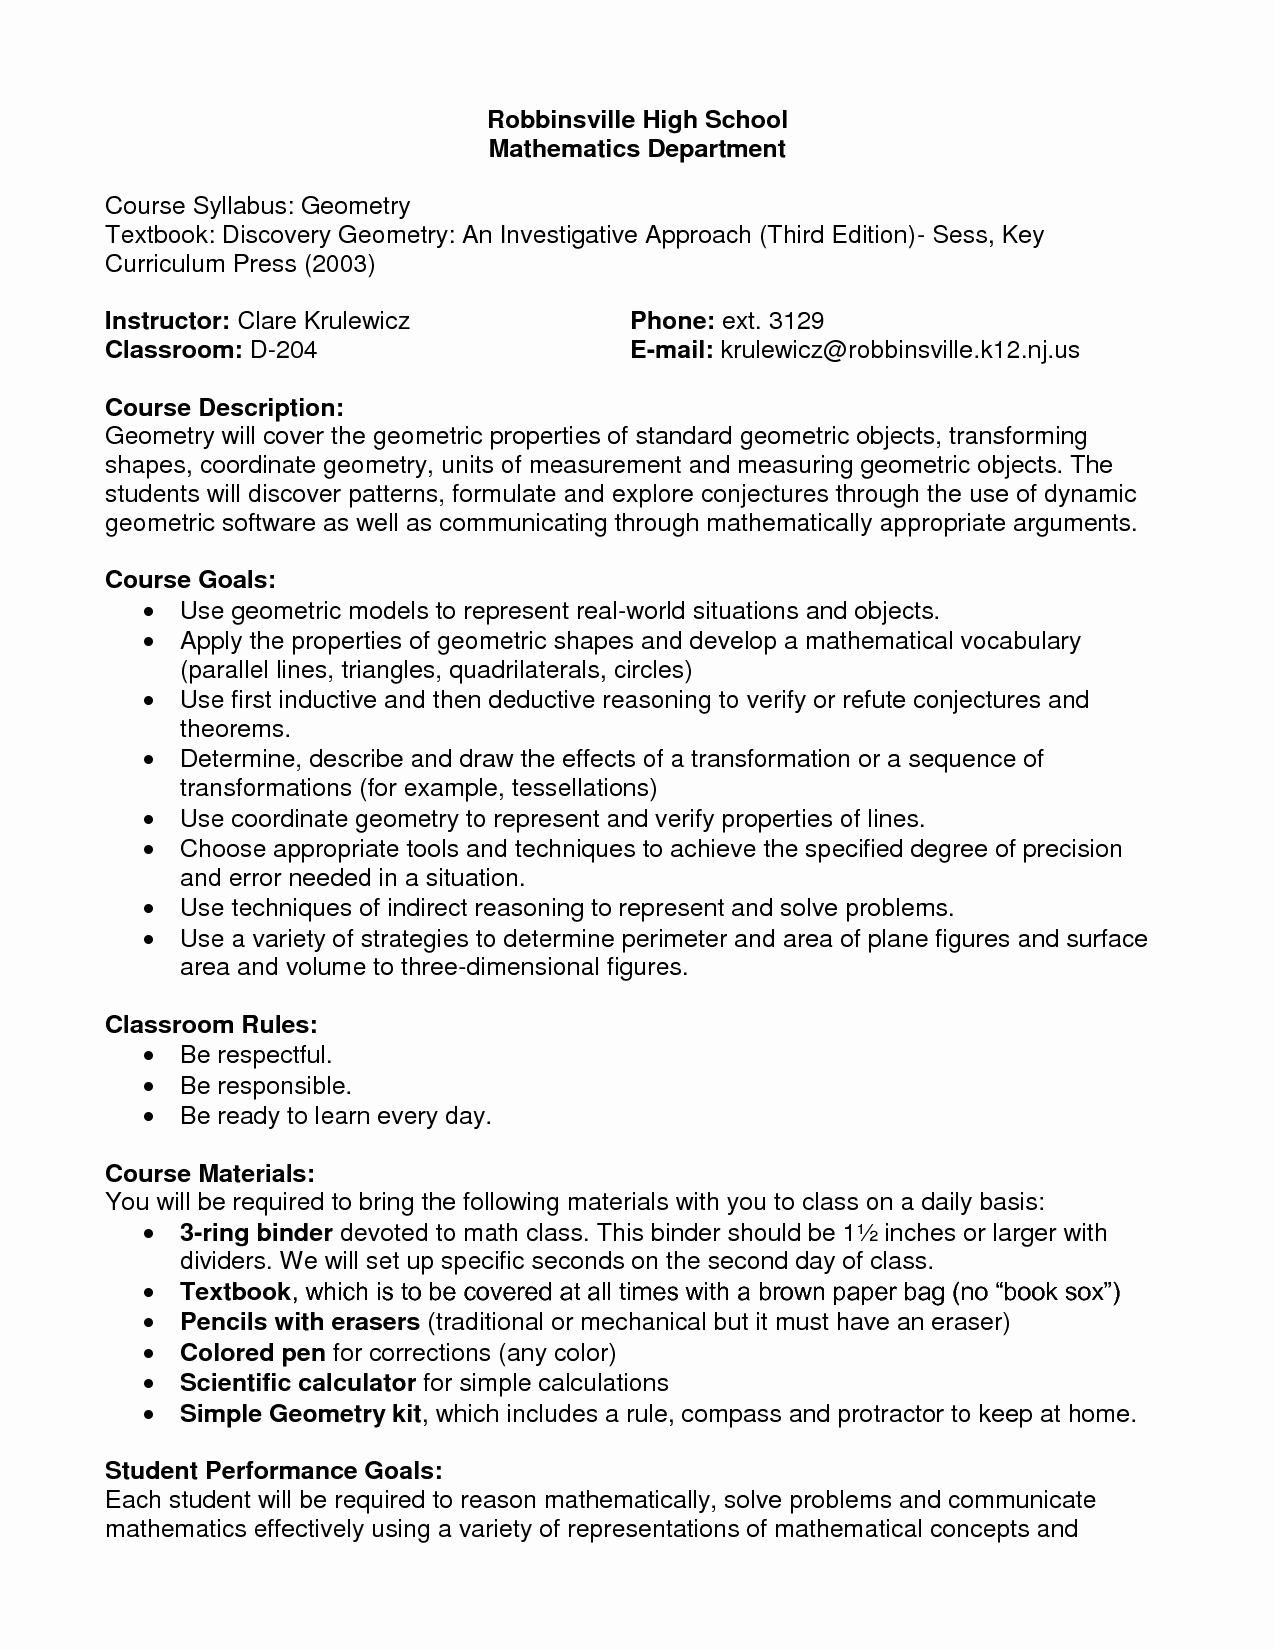 Syllabus Template High School Awesome 10 Best Of High School History Syllabus Template